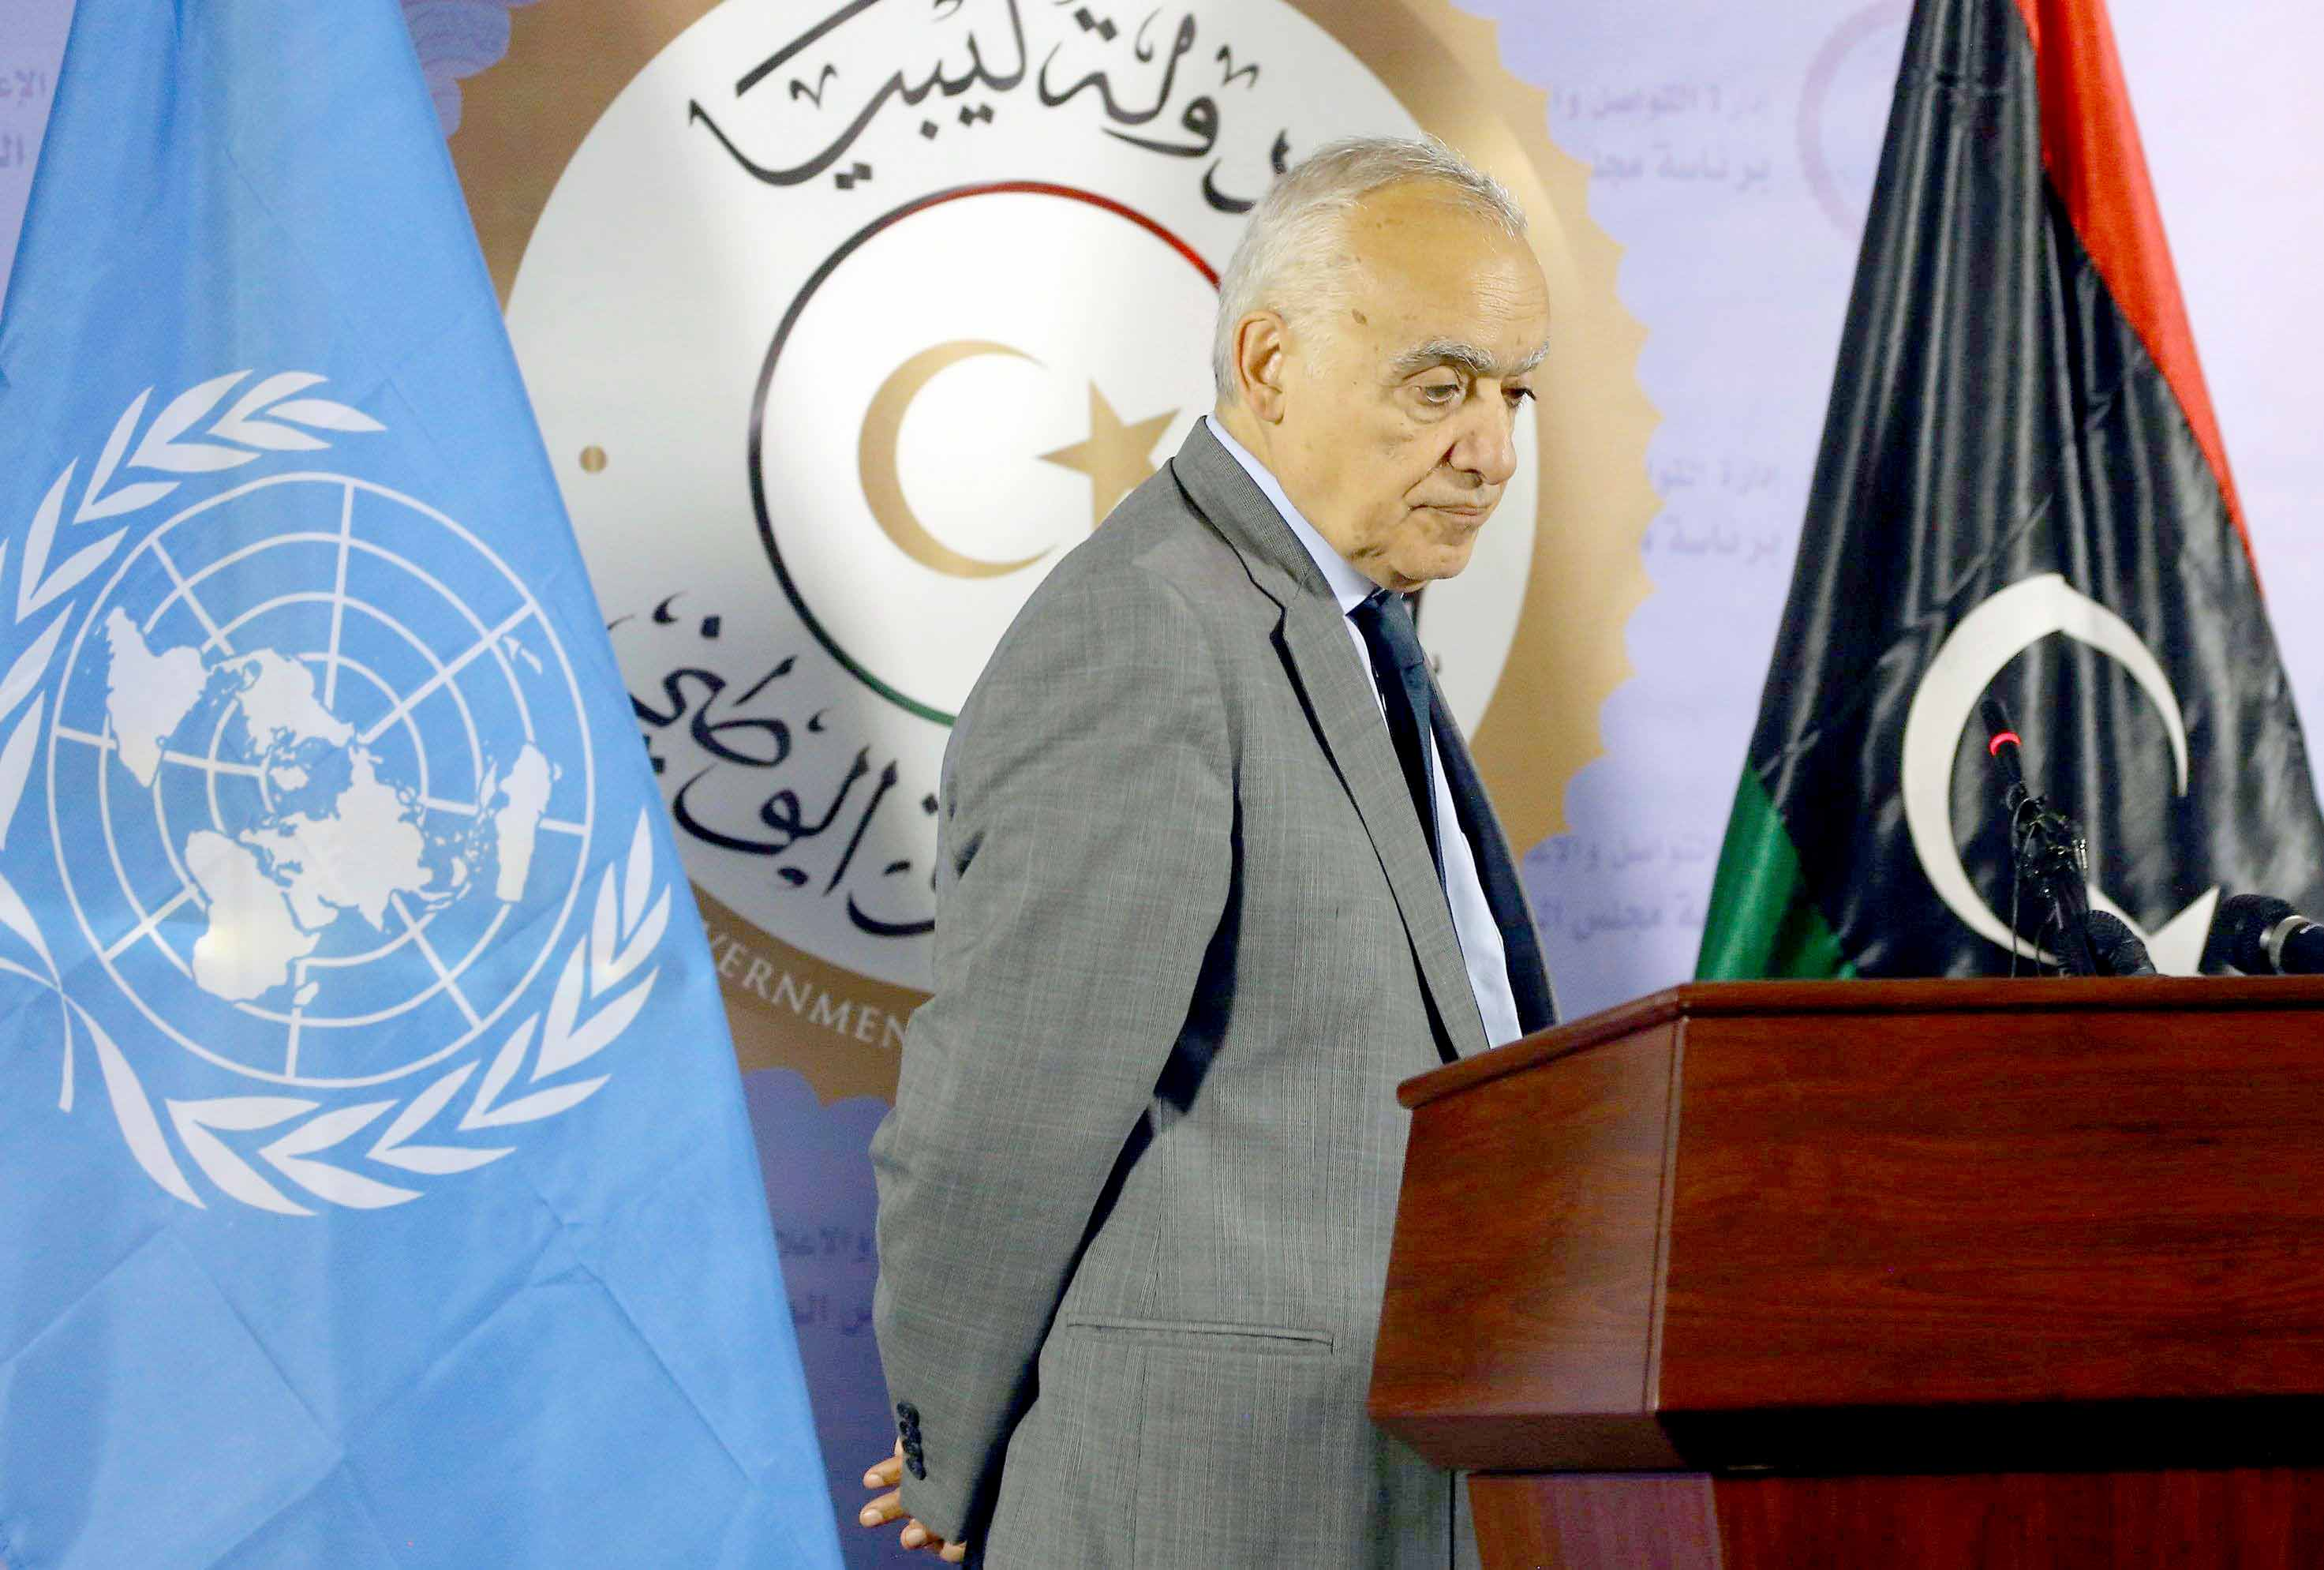 UN Special Envoy for Libya Ghassan Salame speaks during a news conference in Tripoli, last September. (AFP)